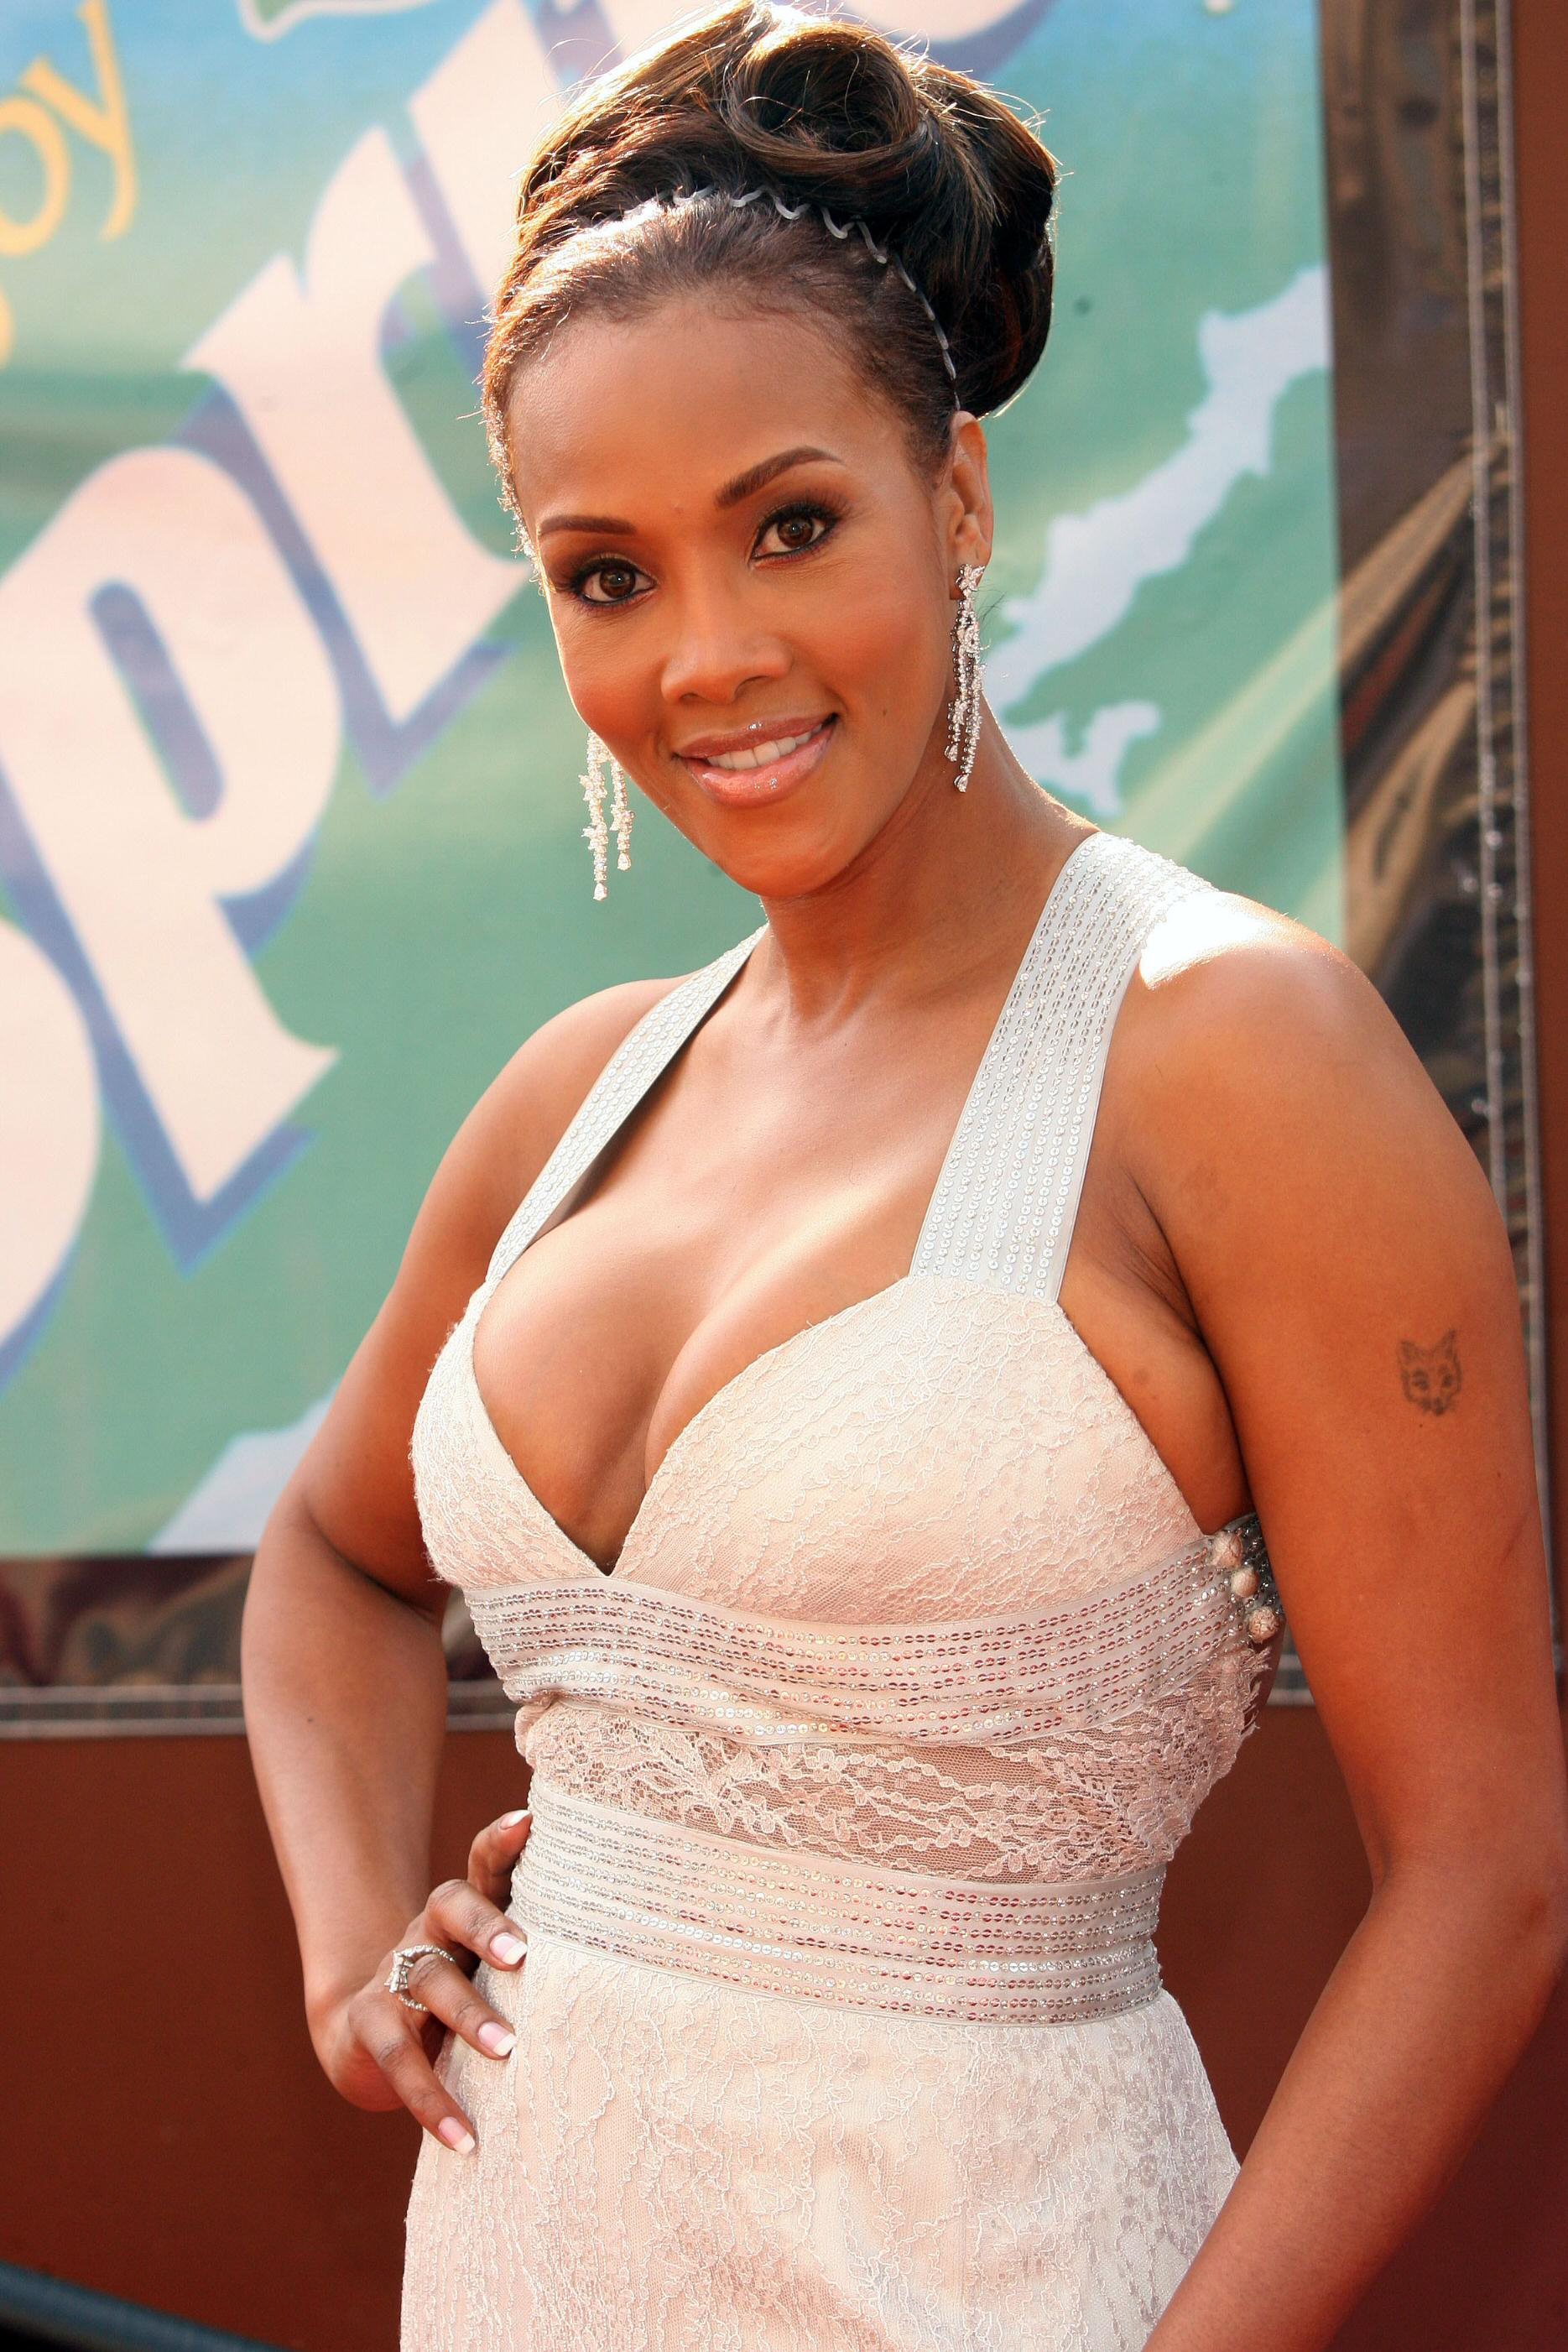 Sexy Vivica A. Fox nude (77 foto and video), Pussy, Hot, Selfie, legs 2006